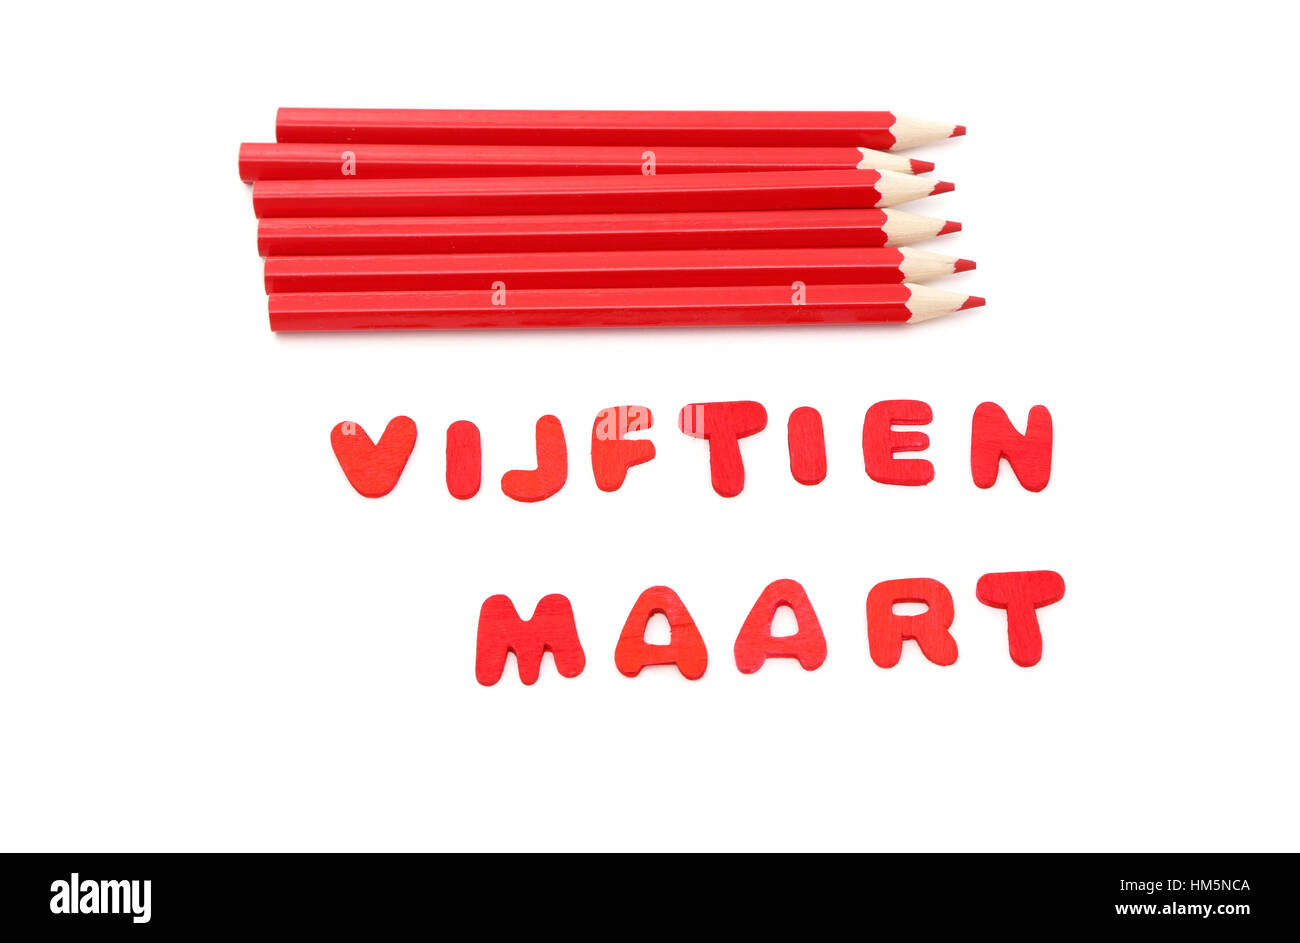 Red pencils and the words vijftien maart which means march fifteen in dutch the day the elections take place in - Stock Image